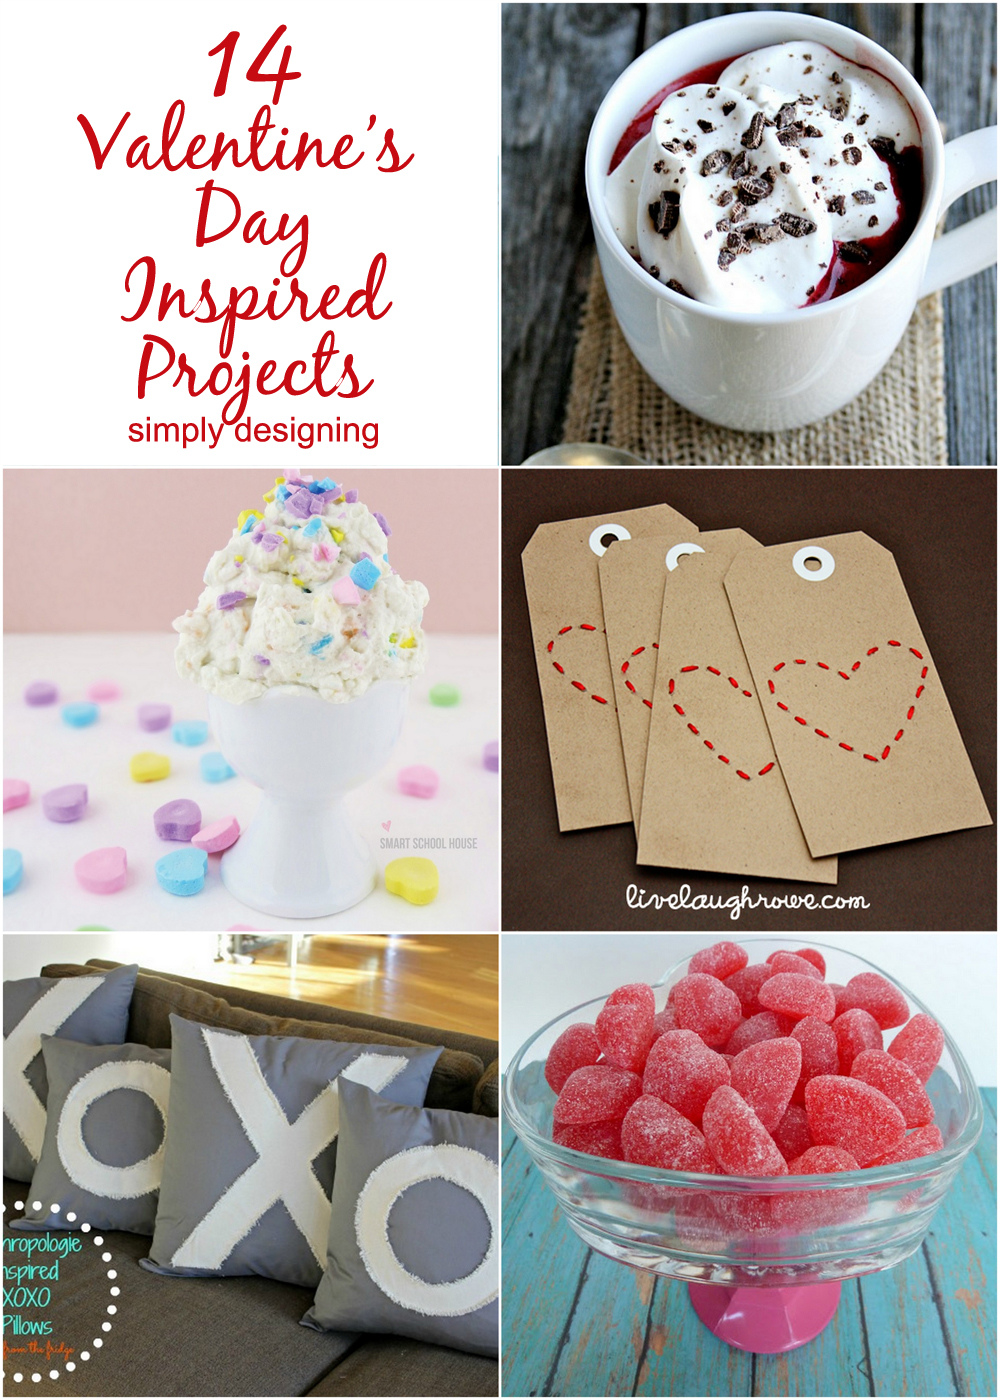 14 Valentine's Day Inspired Projects | #valentinesday #hearts #love #diy #vday